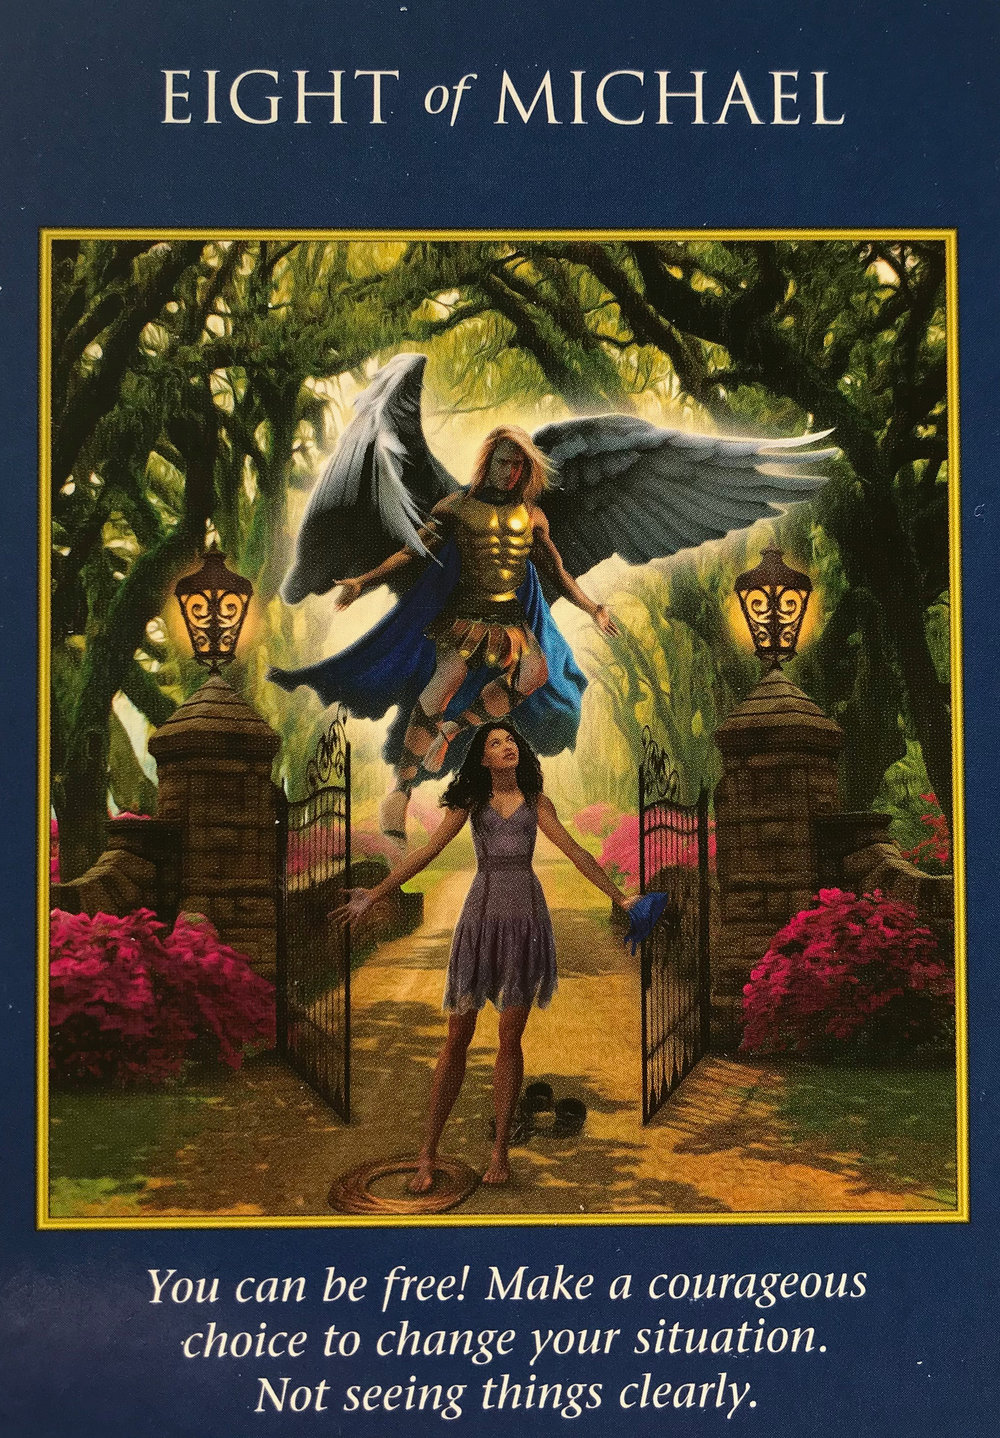 Gemini-Eight of Michael - Stop self-sabotaging! You've convinced yourself there are no other options, but you've forgotten that when what's in front of you doesn't look right that you can always turn to a different view of things. Once you change your perspective, you may find some old friends coming back into your life, bringing a sense of positivity you haven't felt in a while. Take a step back and think about your emotions from an objective viewpoint, this might help you change your mind.